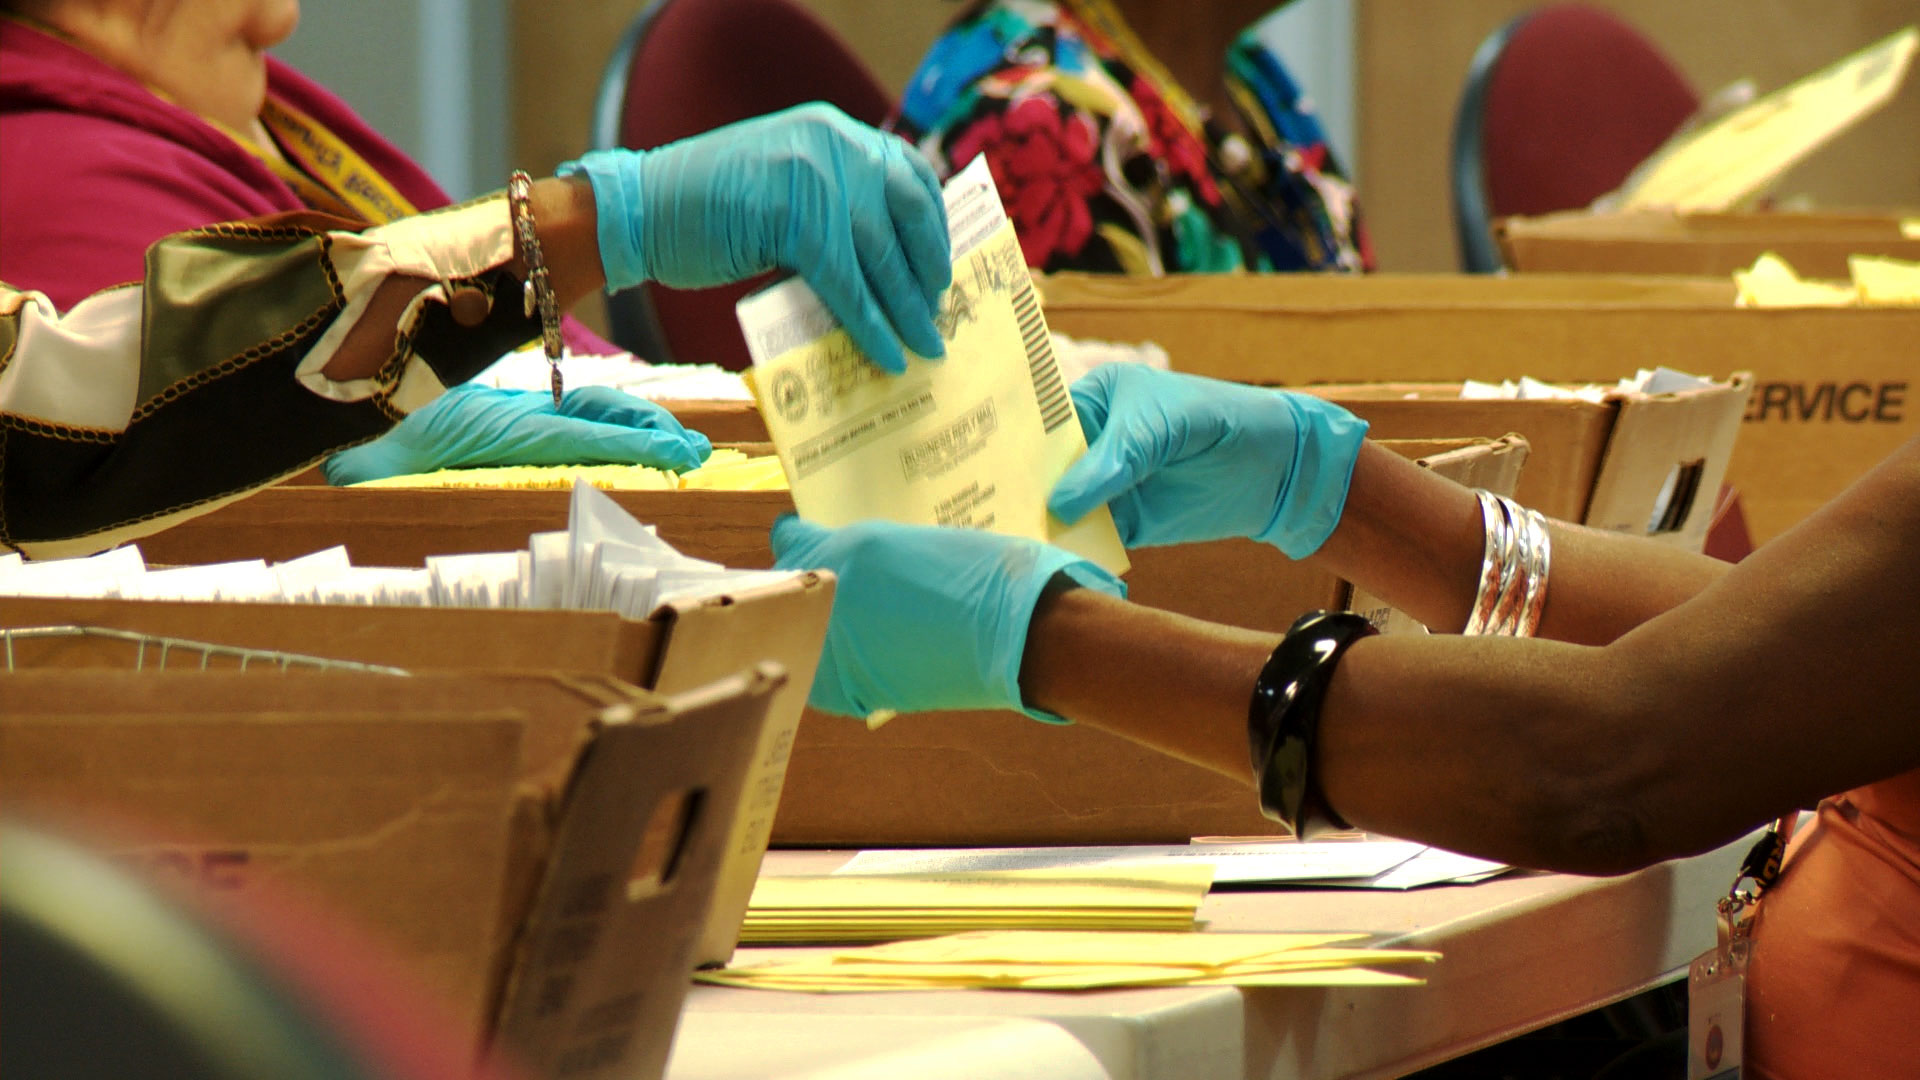 Election workers process mail ballots at the Pima County Elections Department.